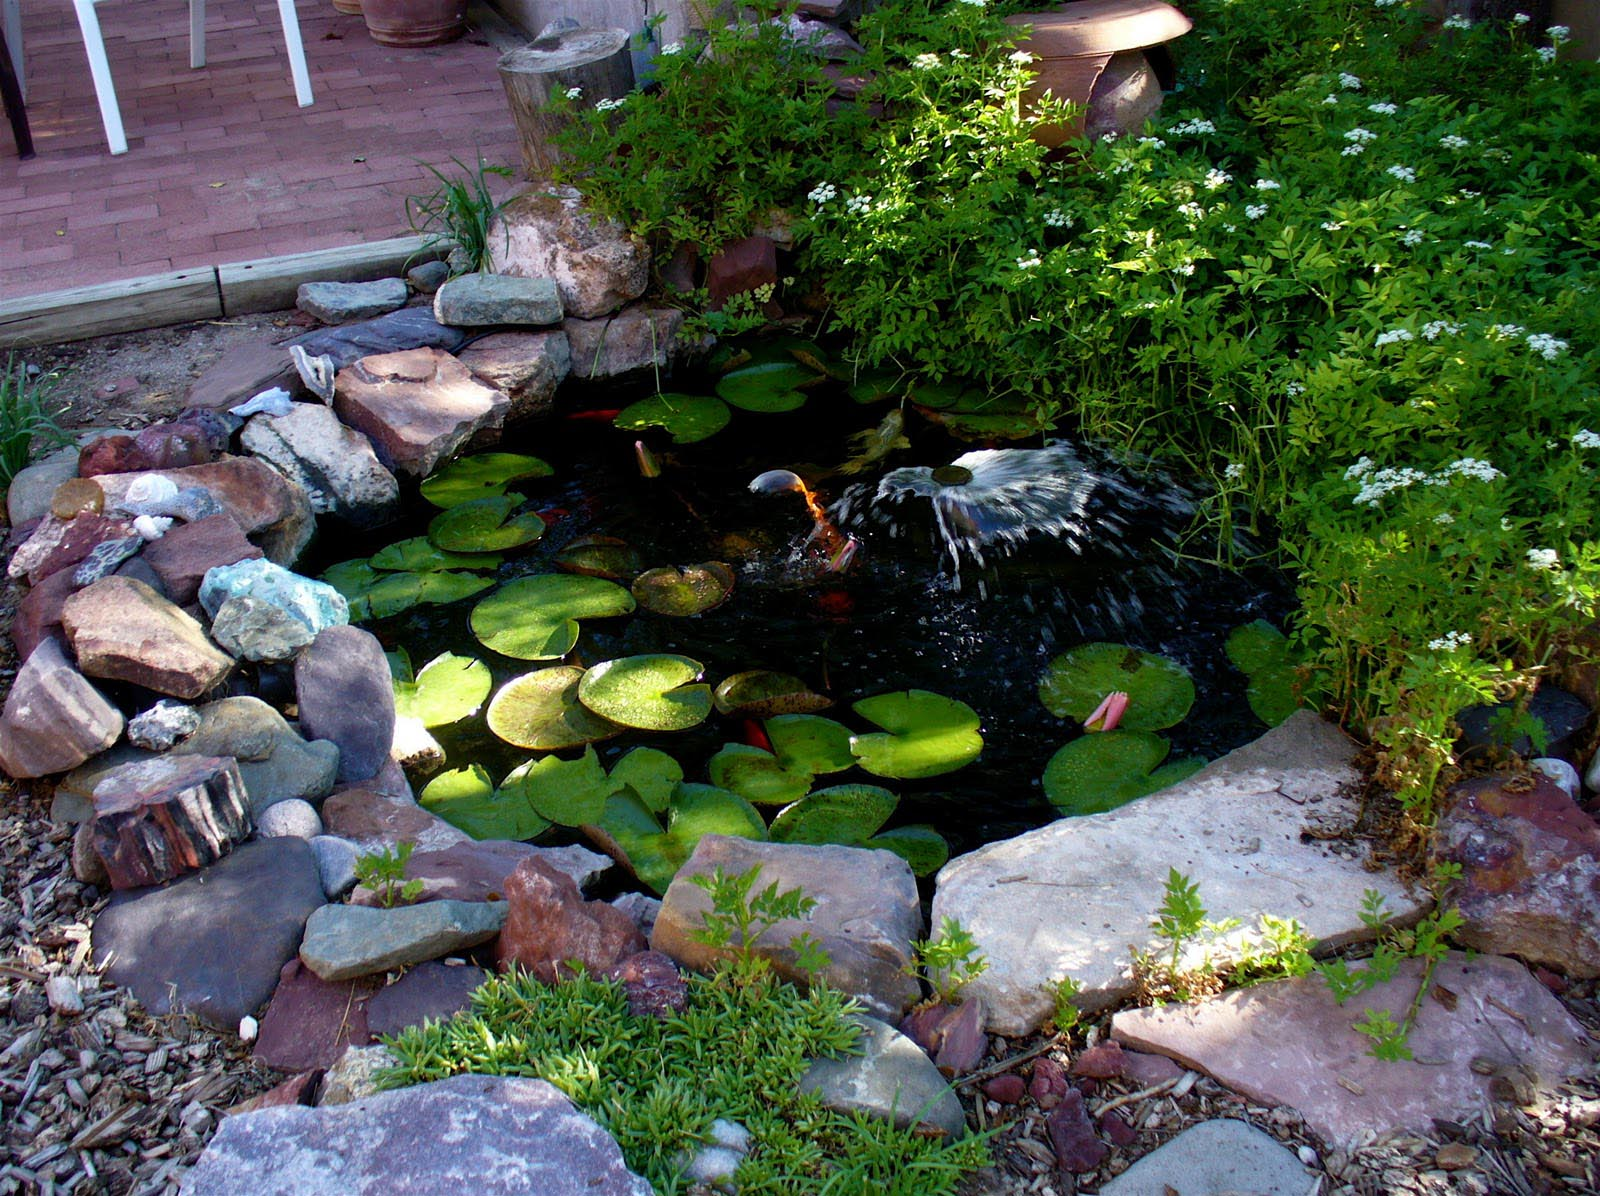 Garden fish pond ideas backyard design ideas for Making a fish pond